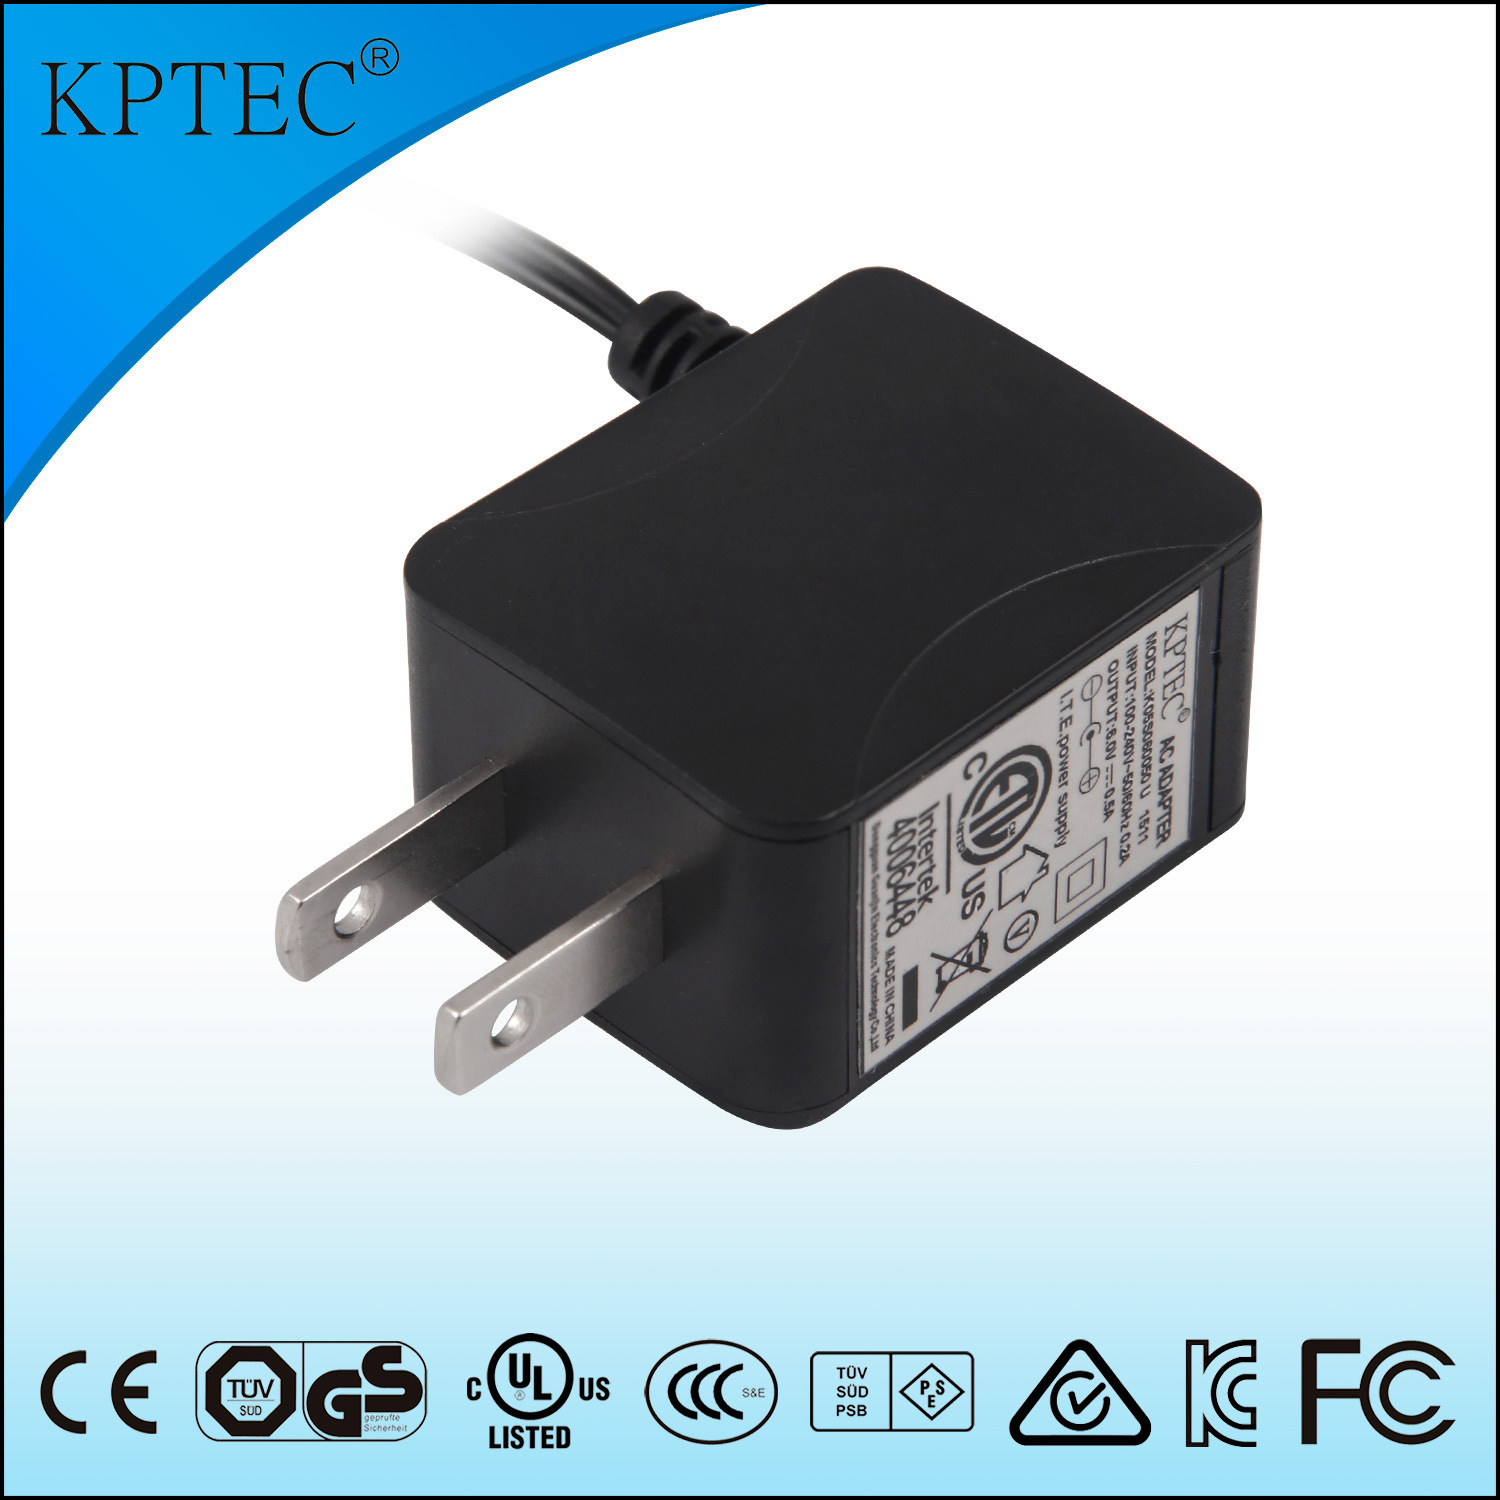 Level 6 Efficiency 5V 1A AC Adapter with UL Certificate